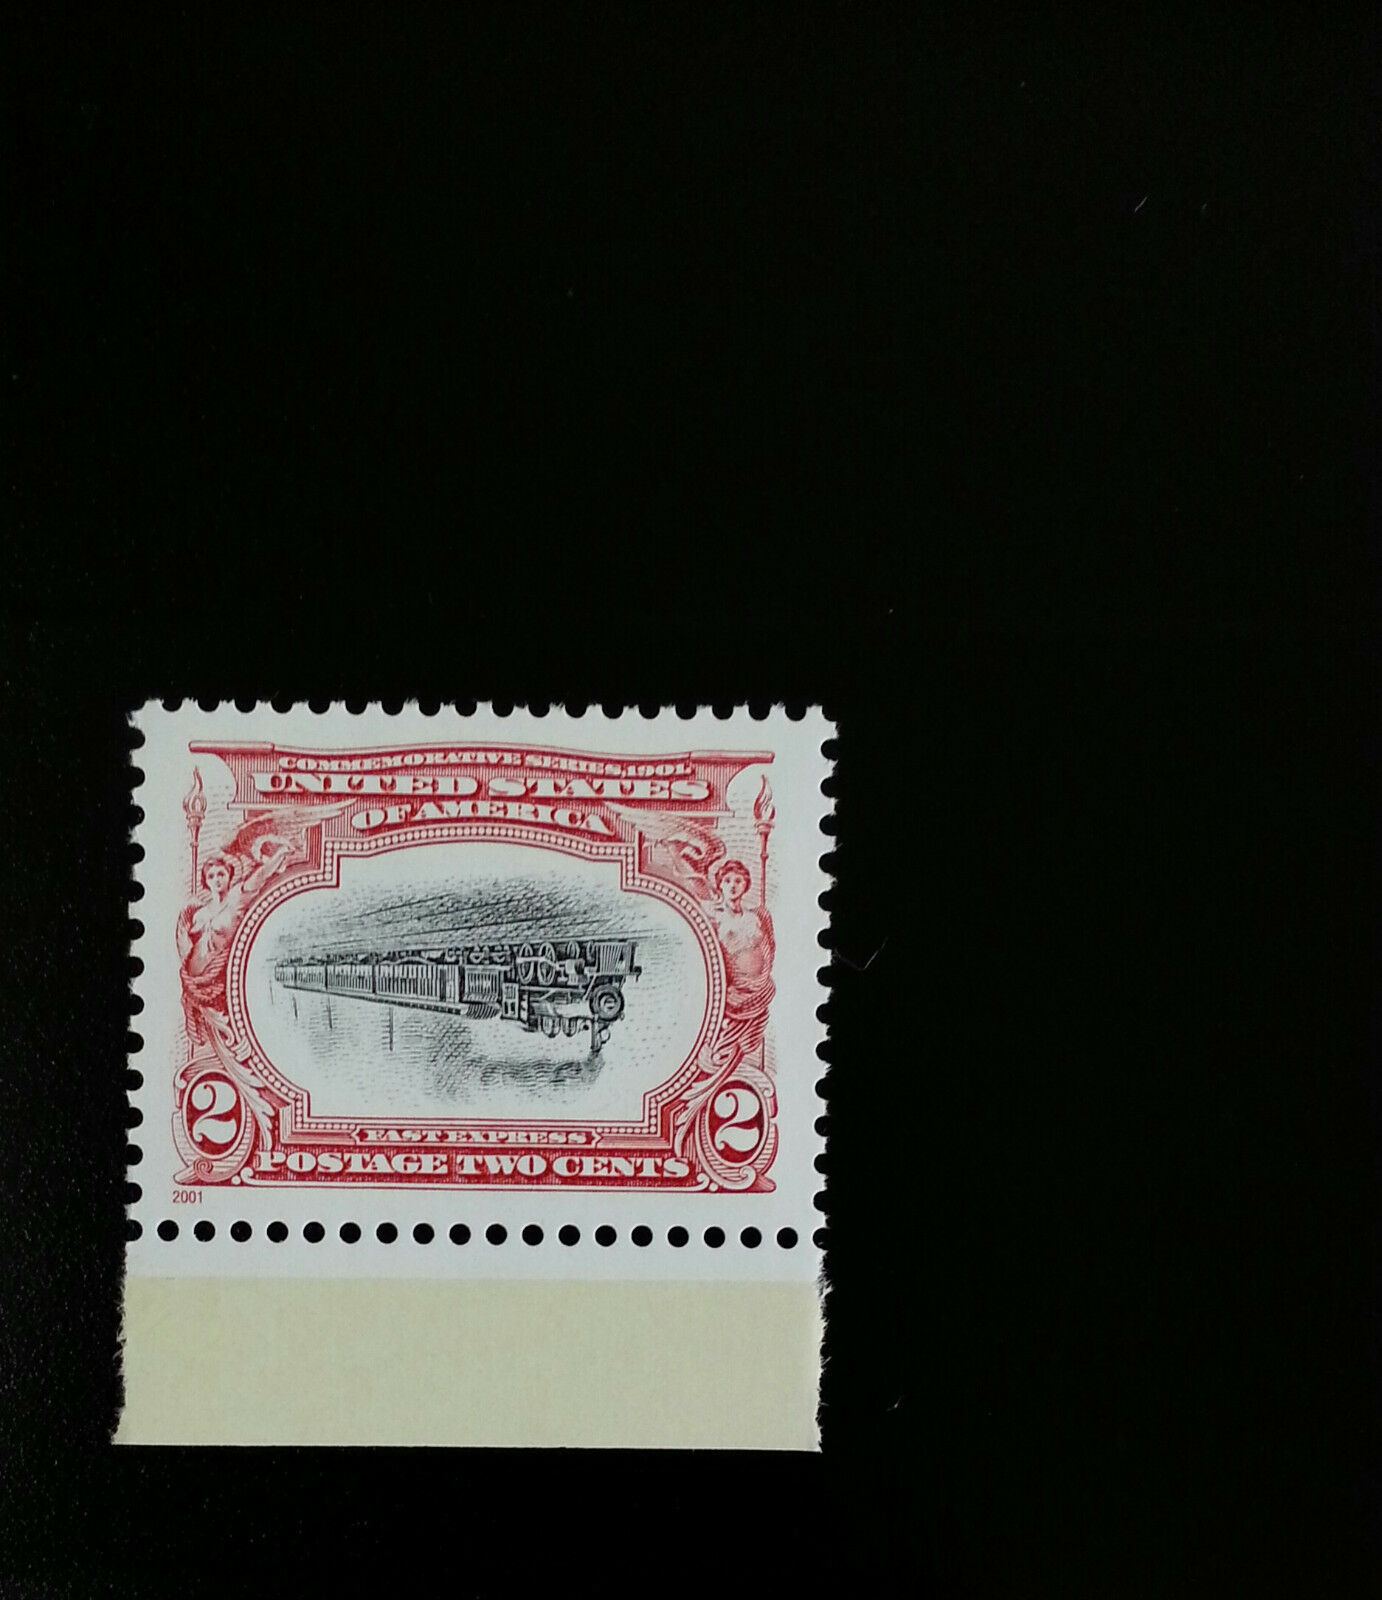 2001 2c Pan-American Inverts, Empire State Express, Tra